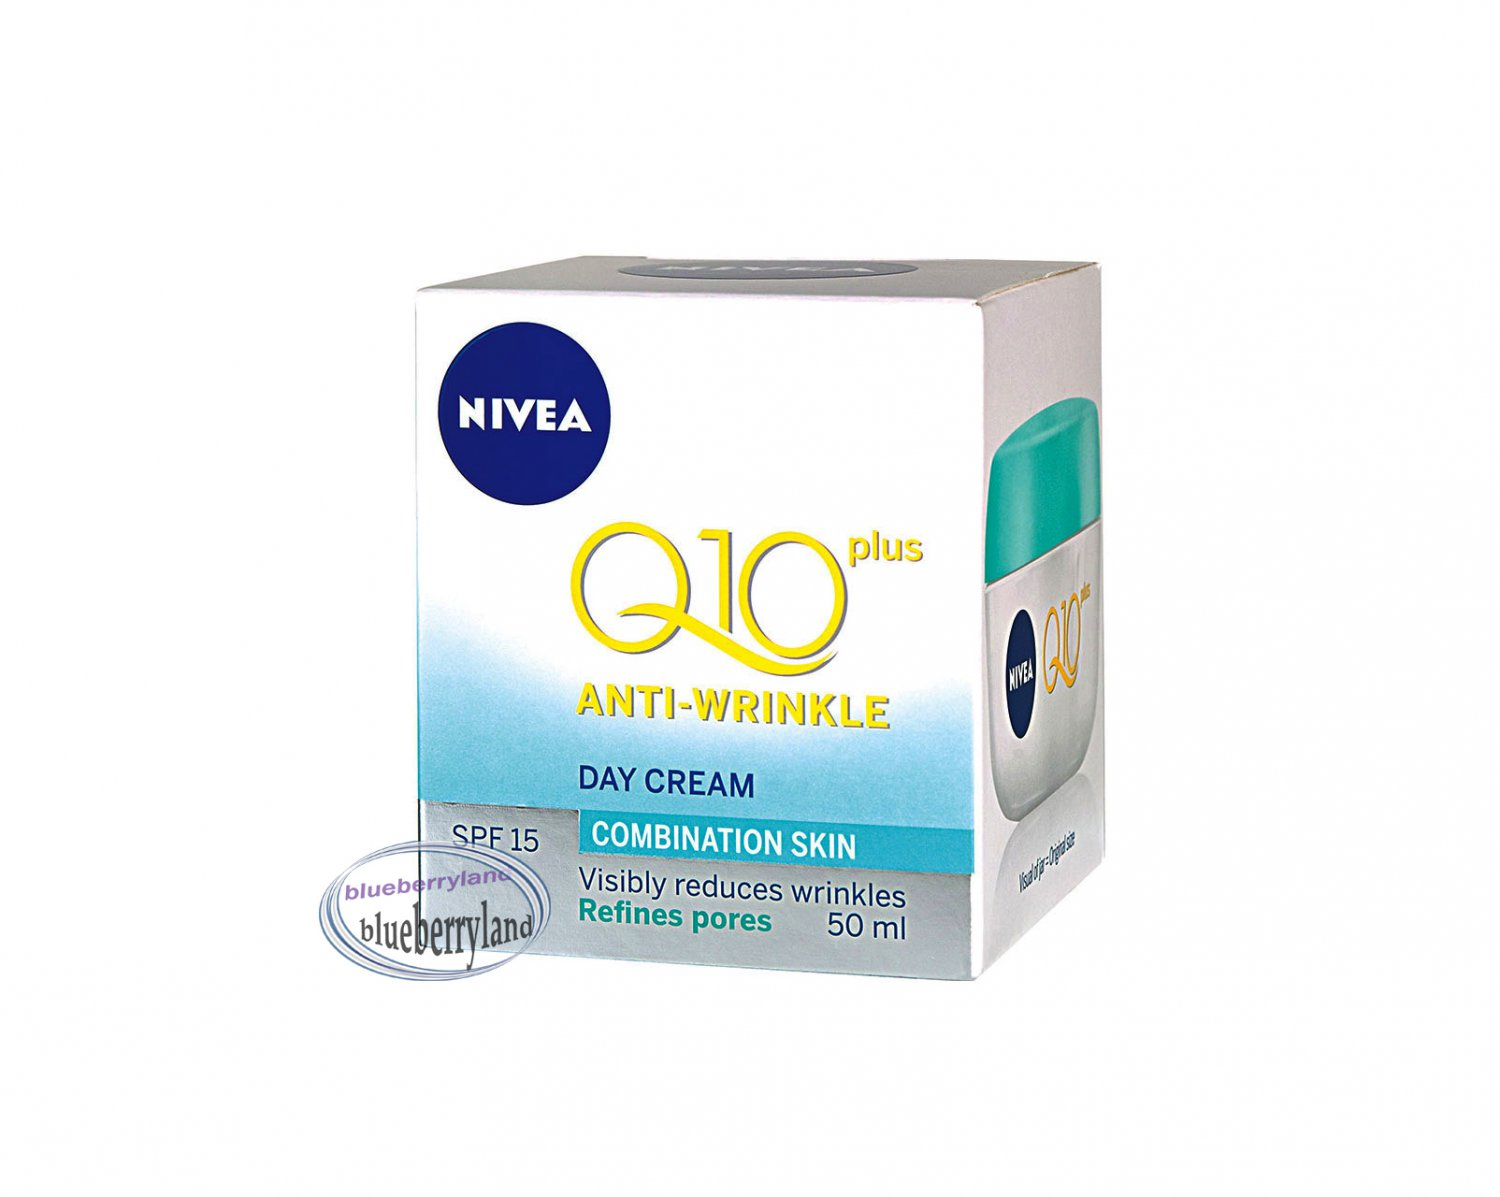 Nivea Q10 Plus Anti-Wrinkle Day Cream SPF 15 refines pores 50ml Ladies skin care health & beauty